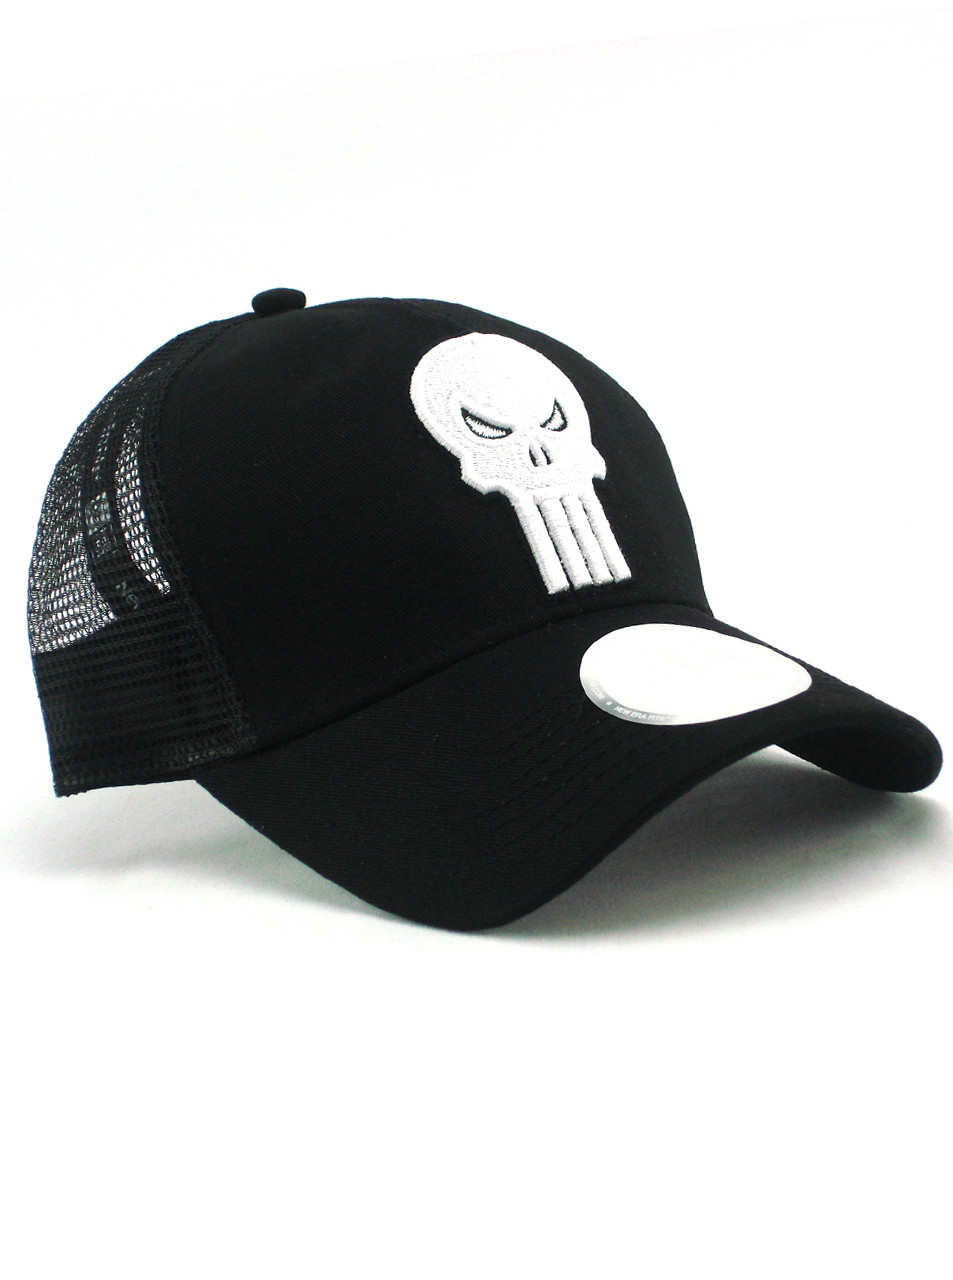 New Era Punisher Adjustable Trucker Hat View 1 df488676042